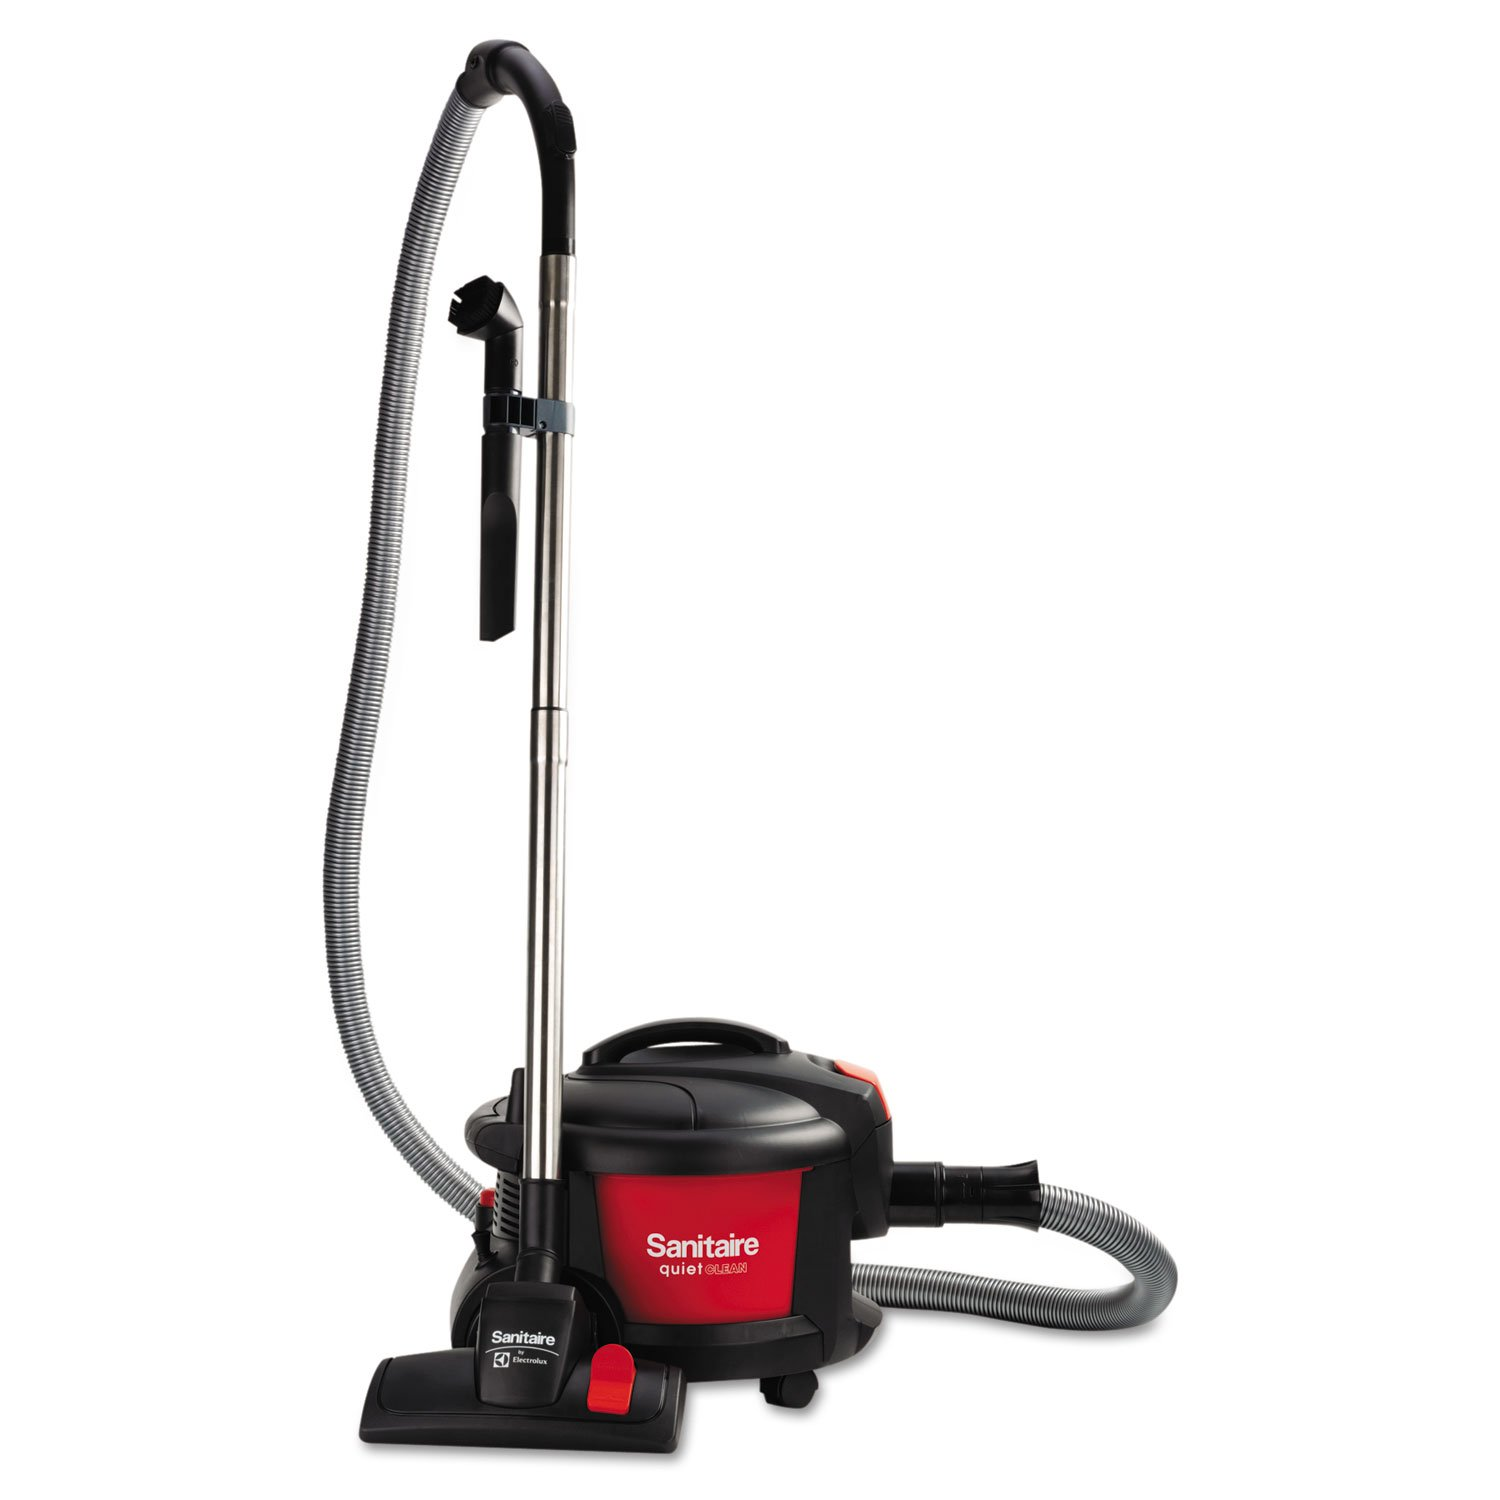 "Sanitaire SC3700A Quiet Clean Canister Vacuum, Red/Black, 9.0 Amp, 11"" Cleaning Path."